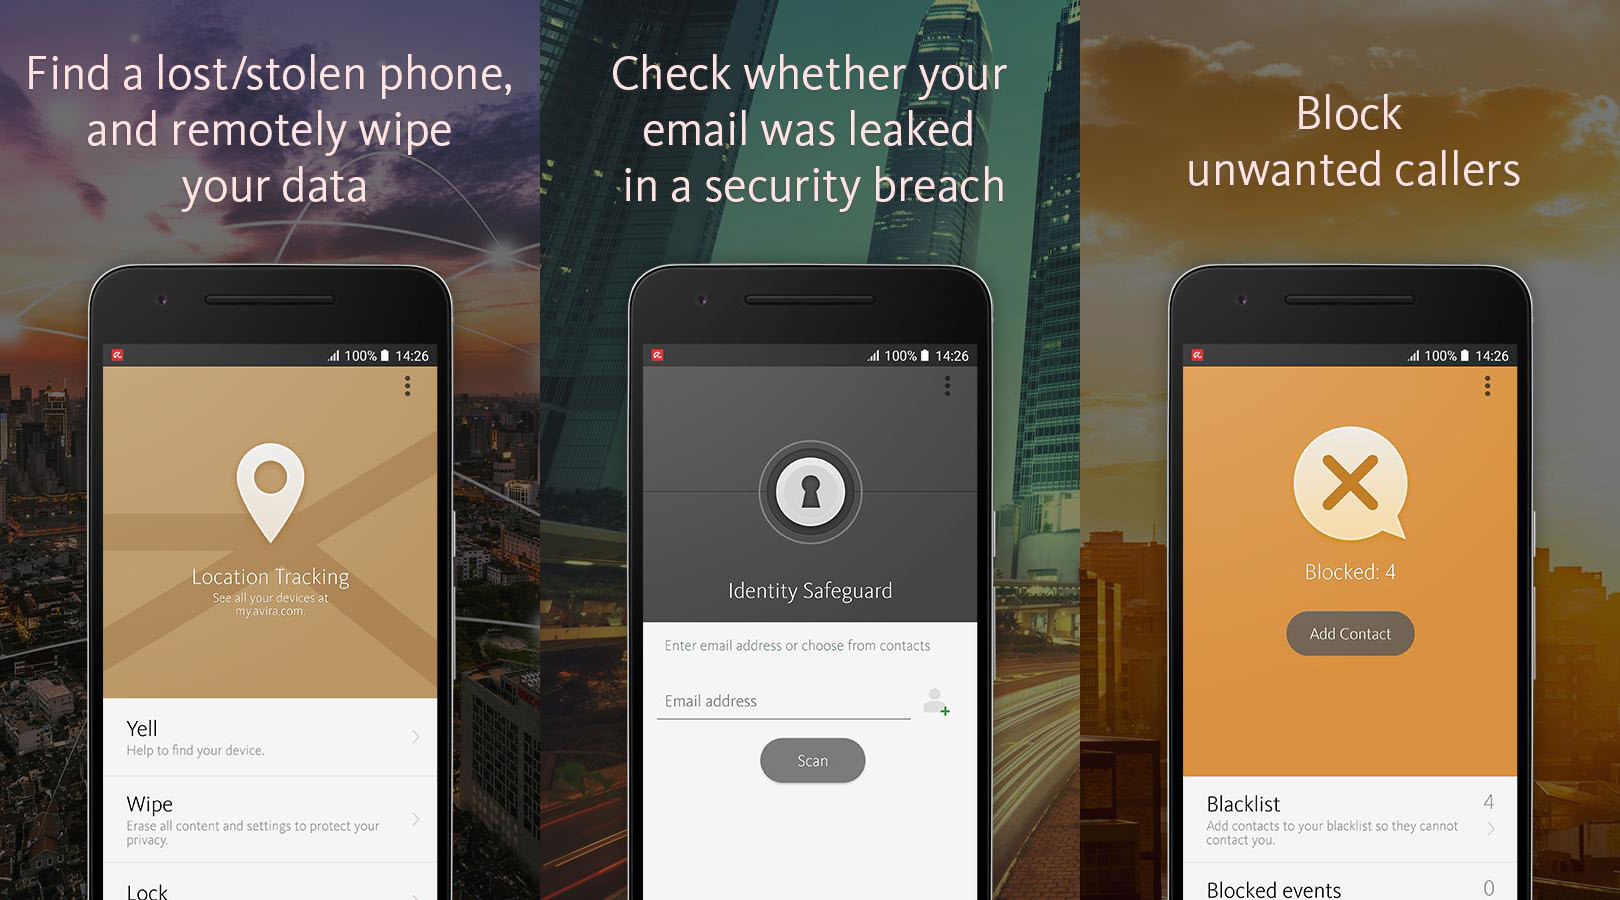 Phone Do You Need An Antivirus For Android Phone 8 free android antivirus stop credit card theft with safe for making mobile devices safer and smarter avira security is